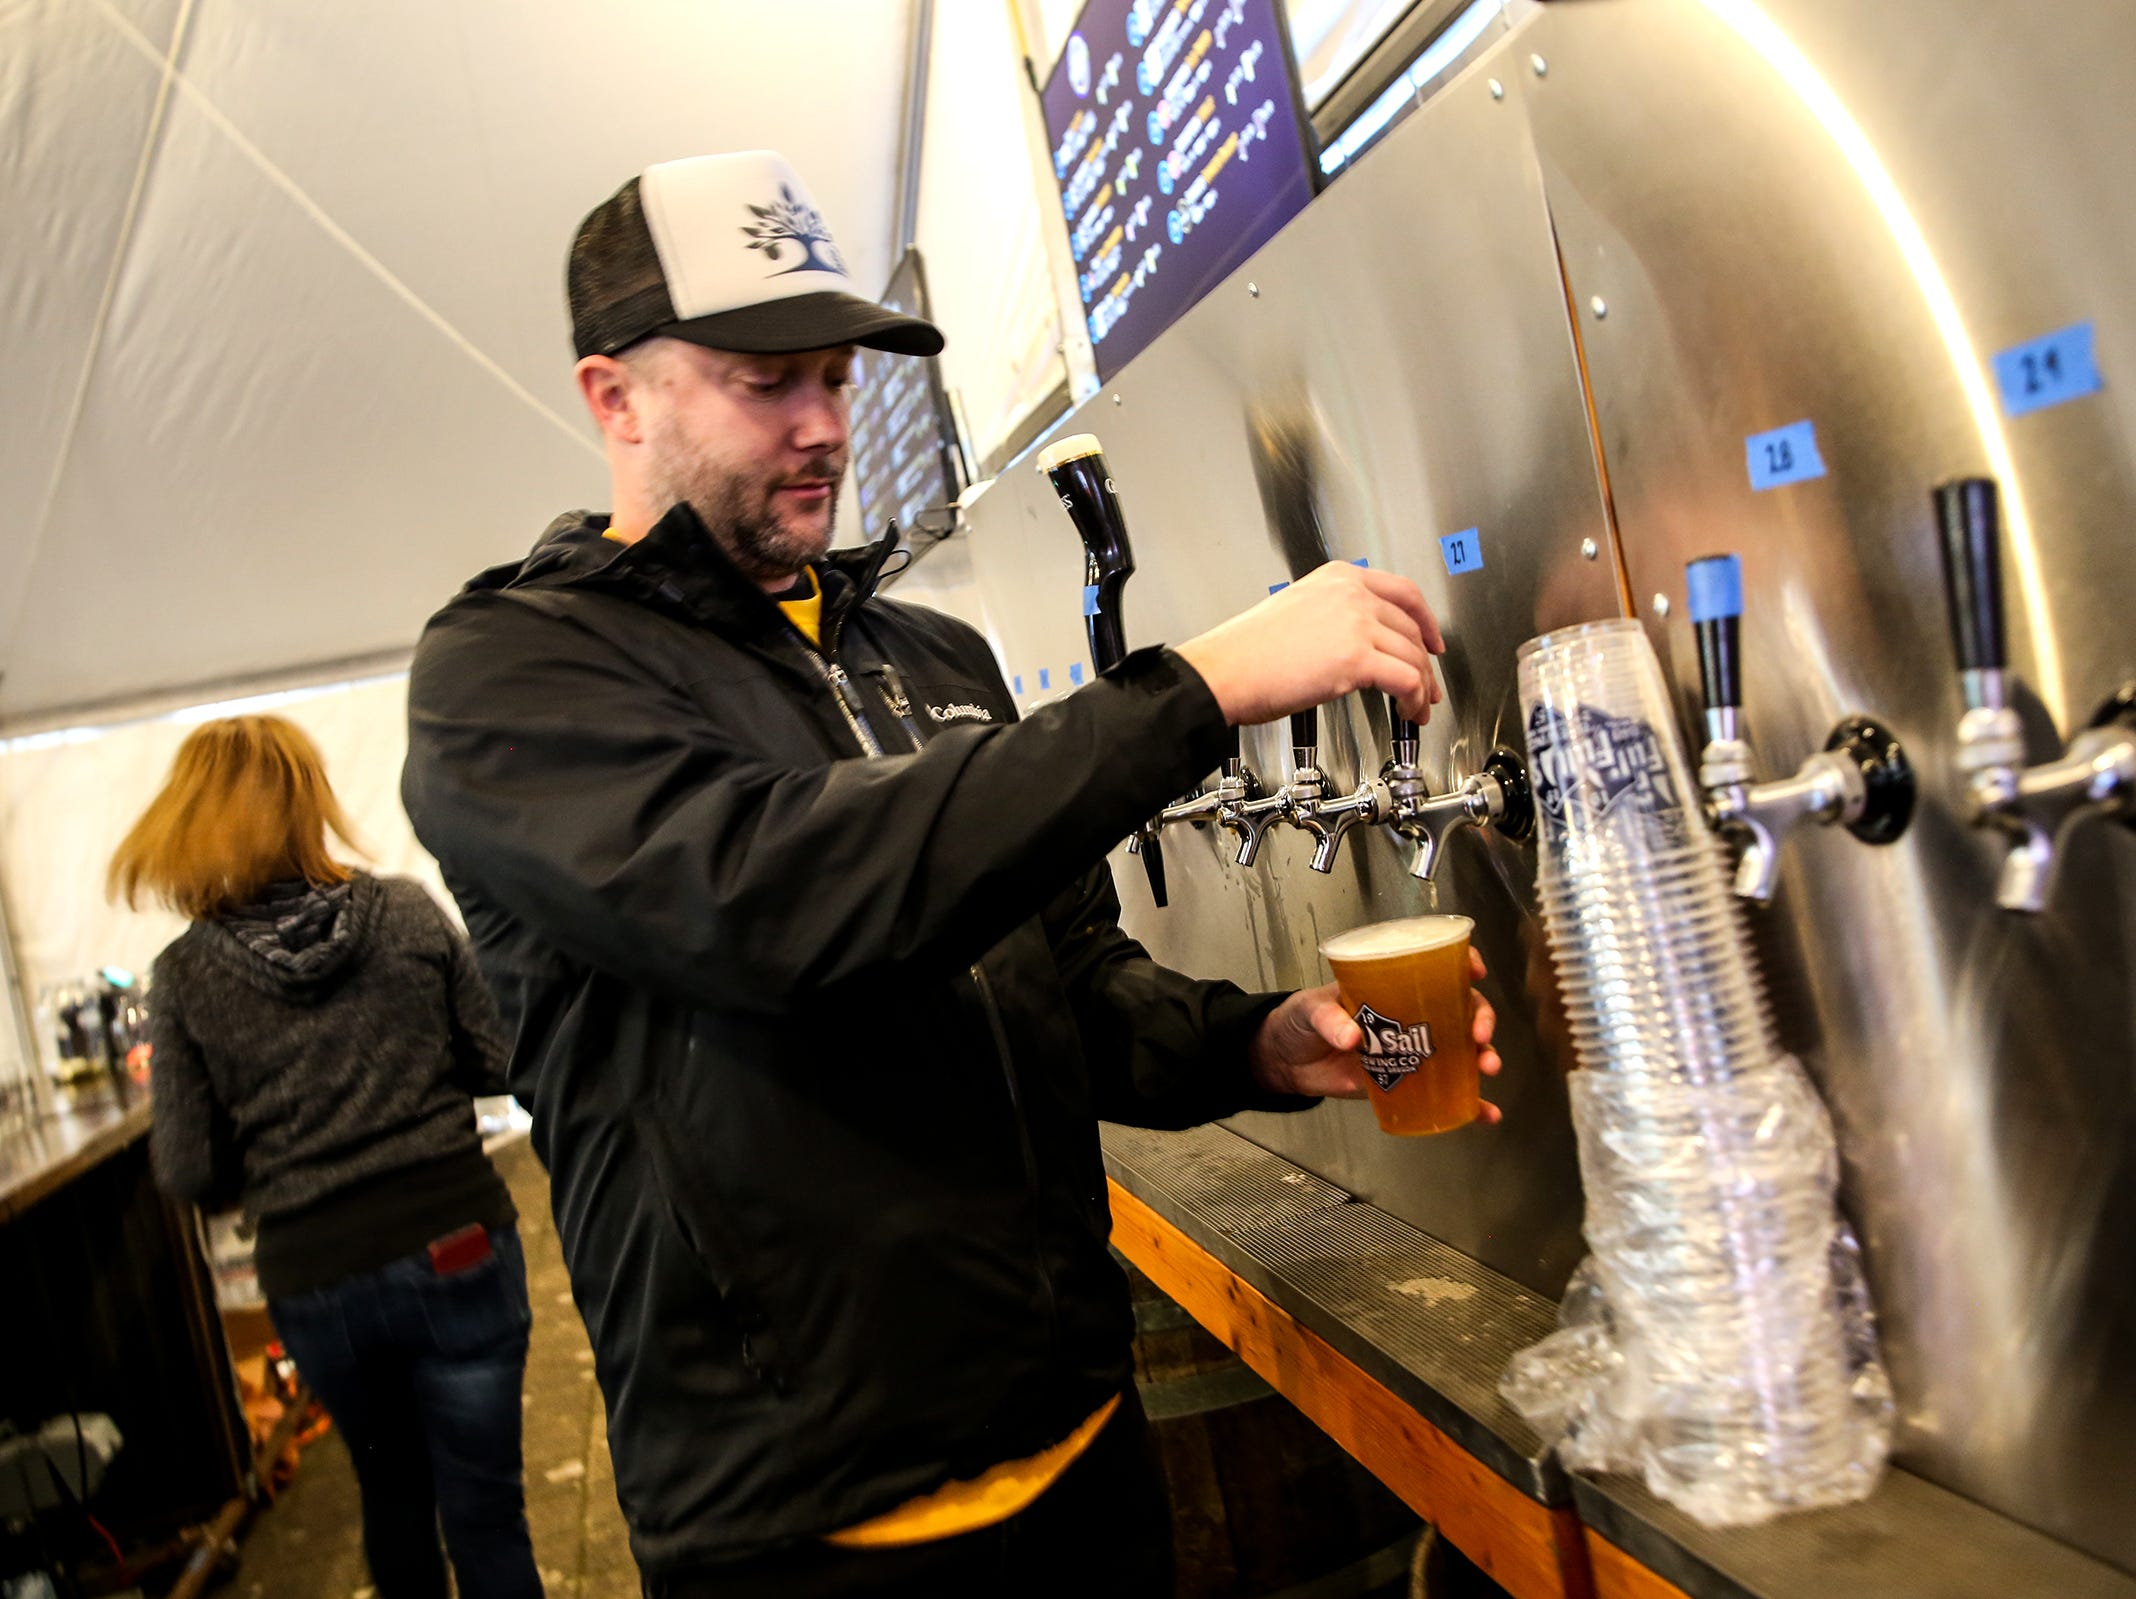 Josian Phillaps pours a beer at Salem Winter Brewfest in downtown Salem in front of the Oregon State Capitol on Thursday, Jan. 31, 2019.